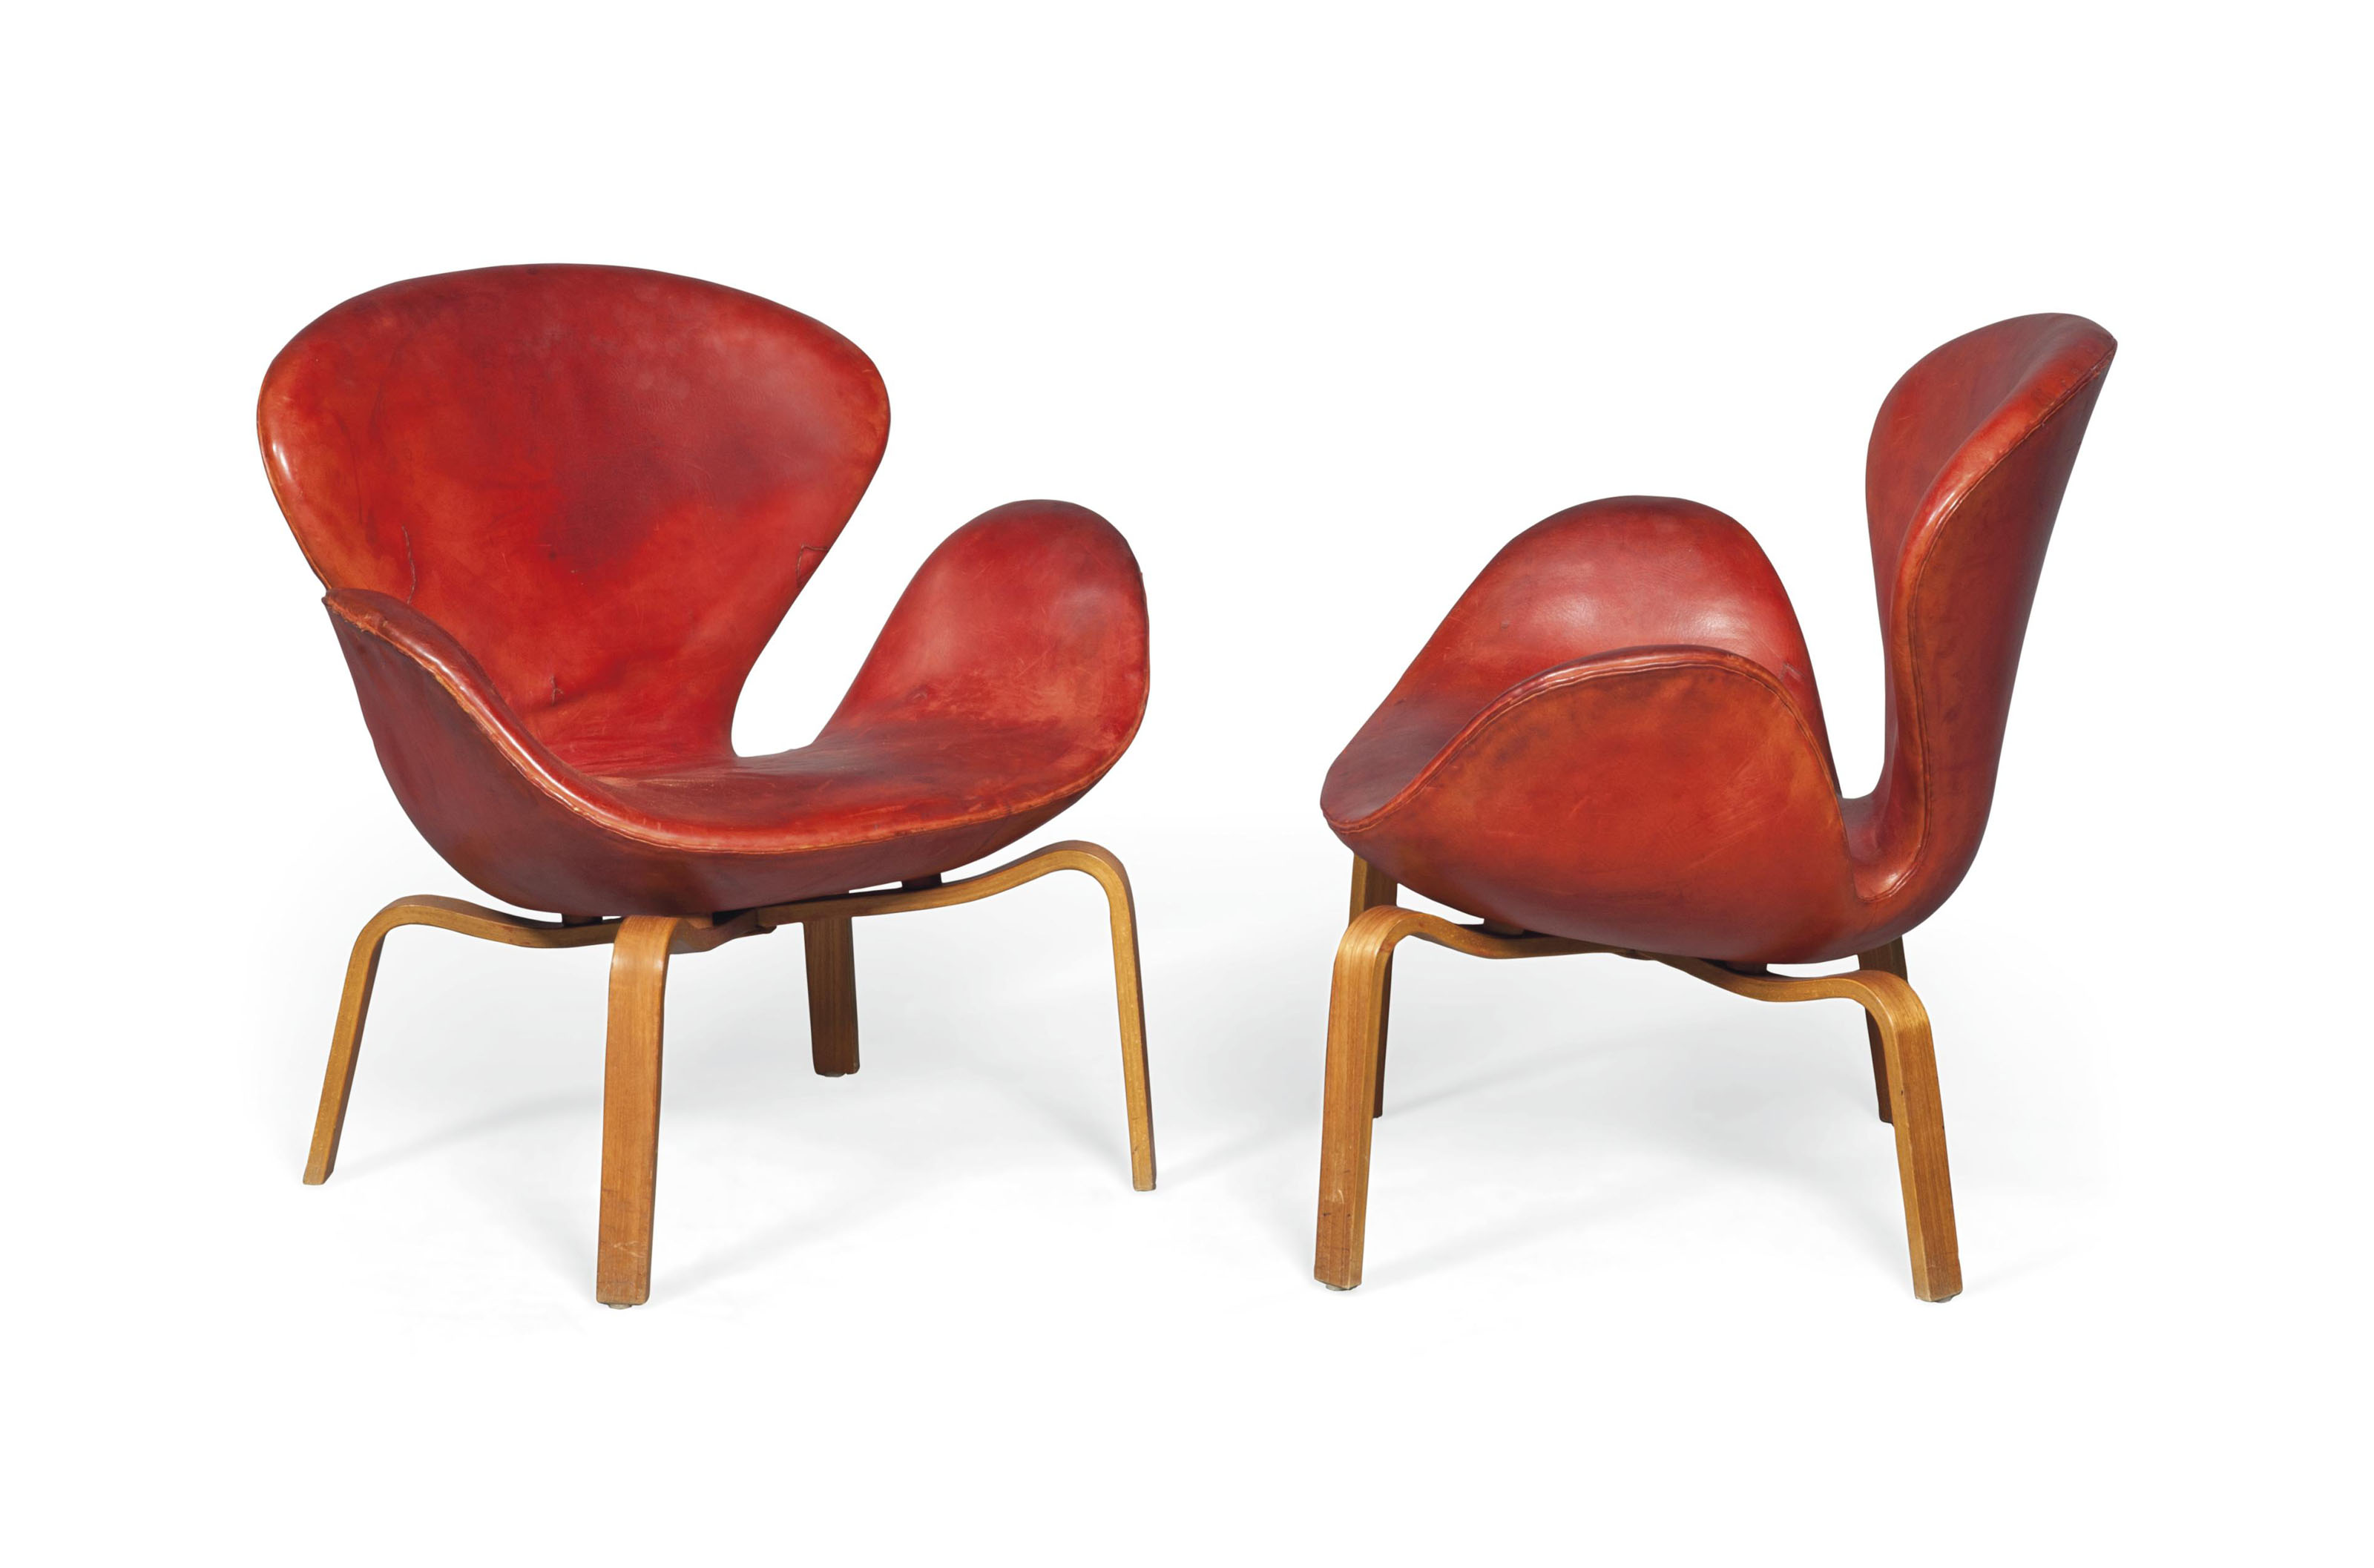 A PAIR OF ARNE JACOBSEN EARLY (PRODUCTION) 'SWAN' LOUNGE CHAIRS